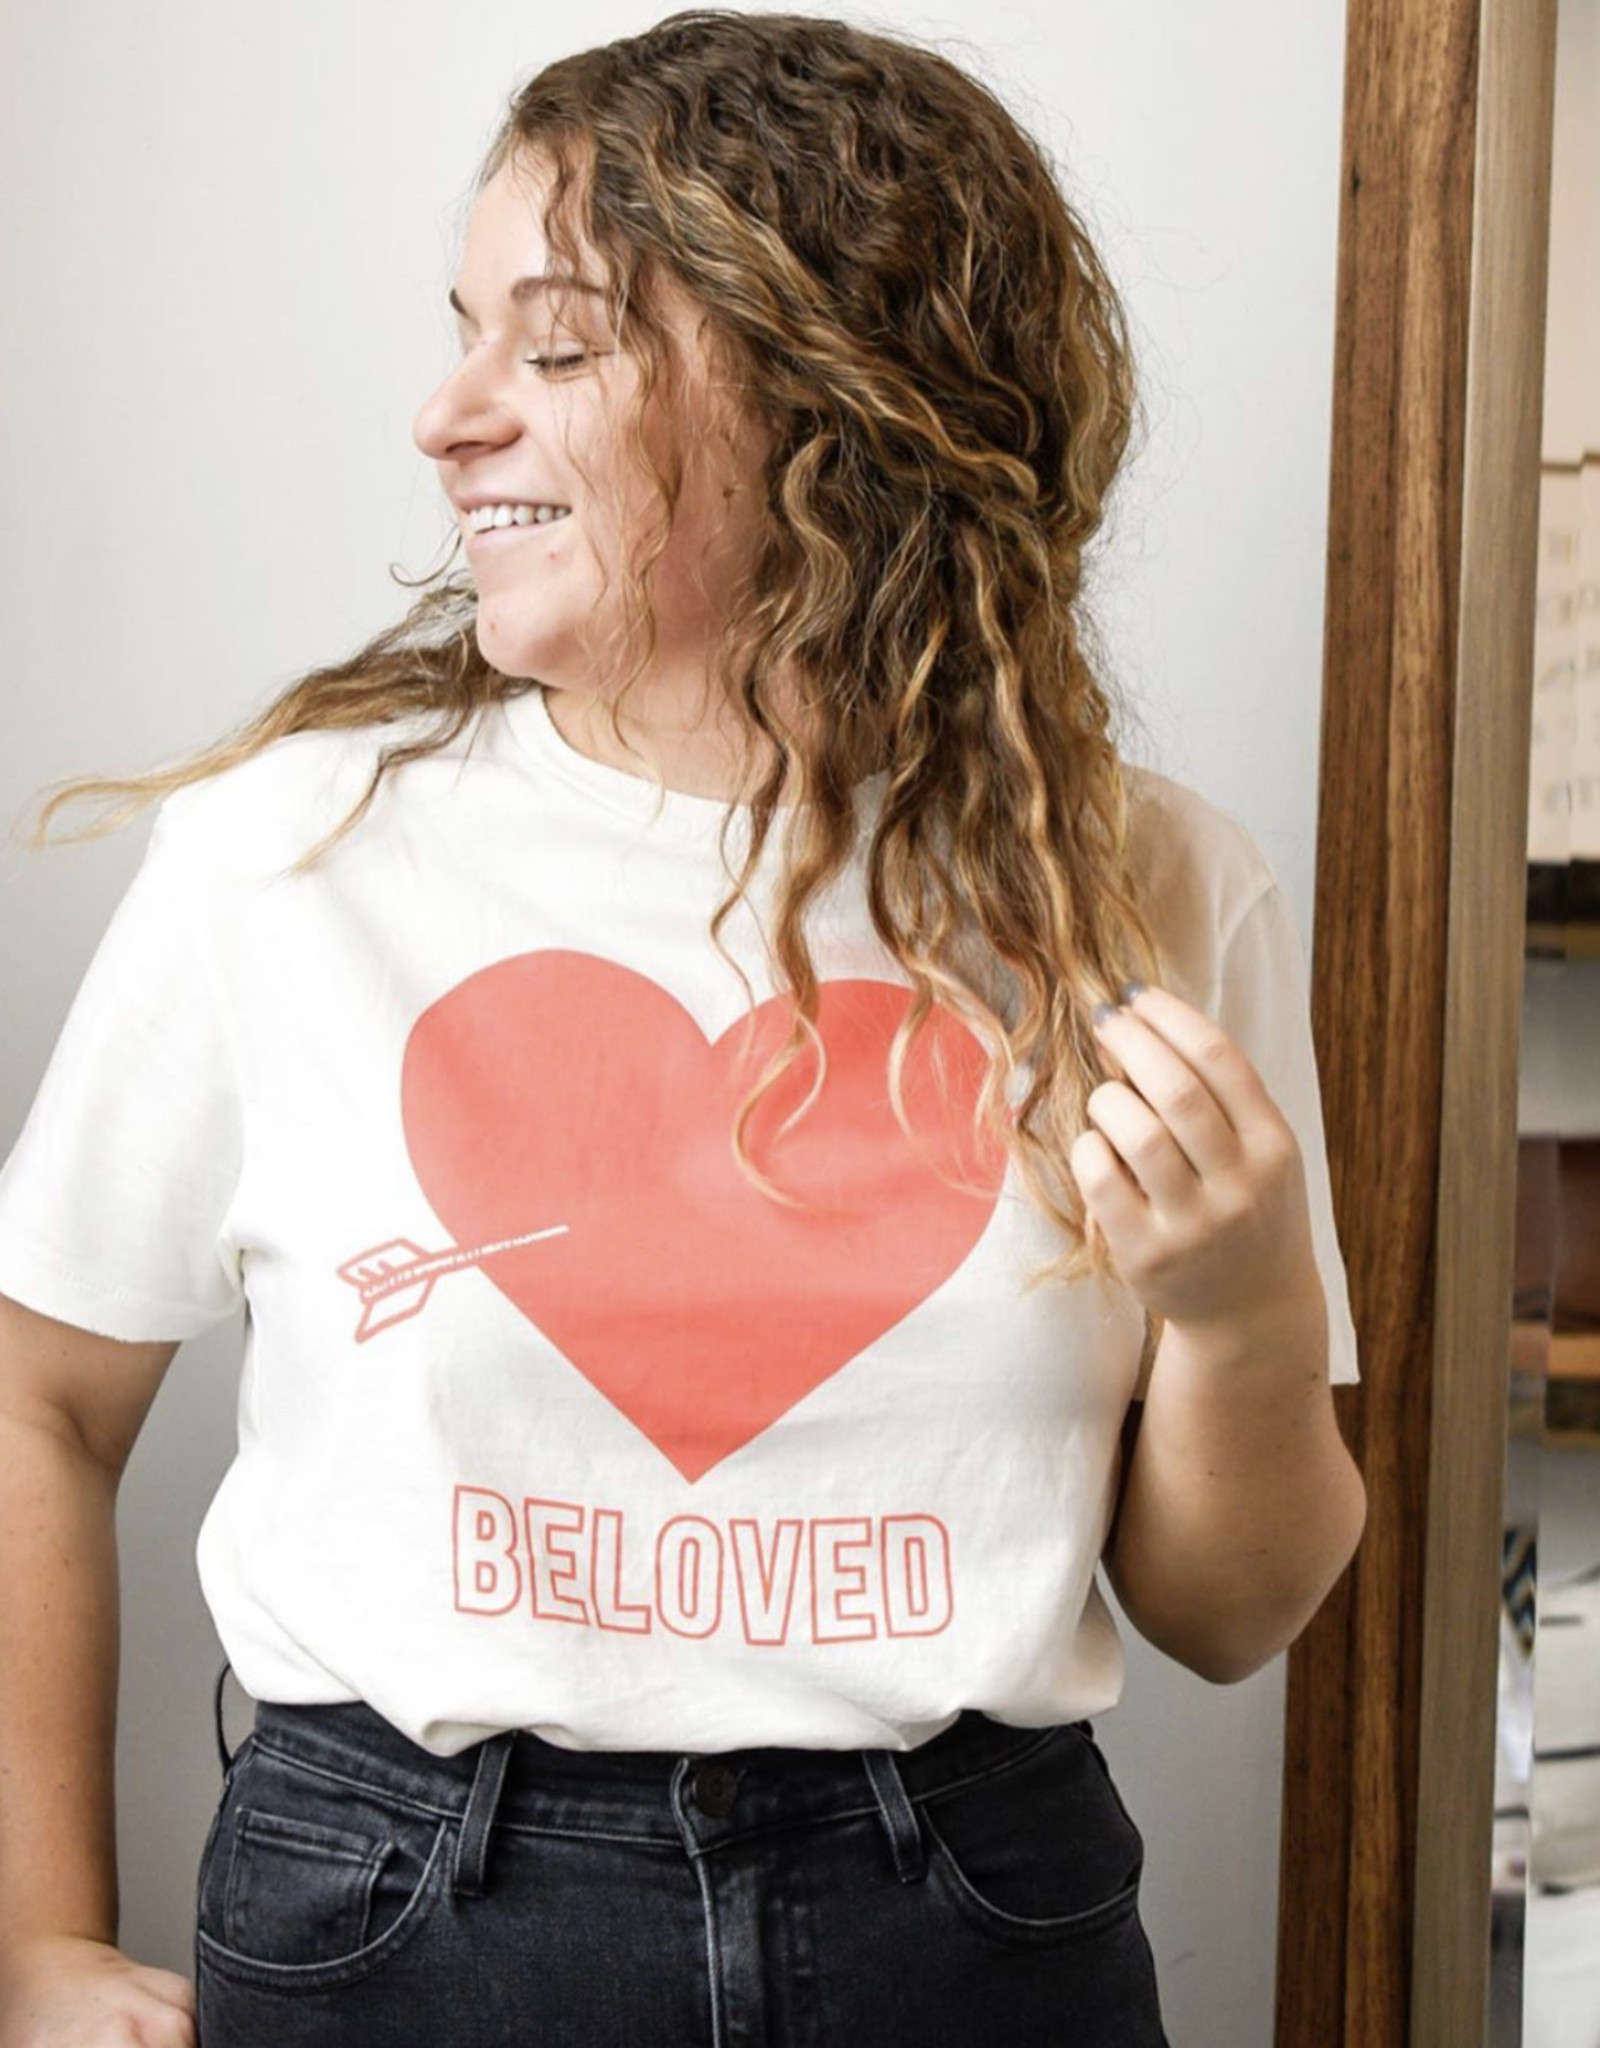 Imago Dei His Beloved Graphic Tee